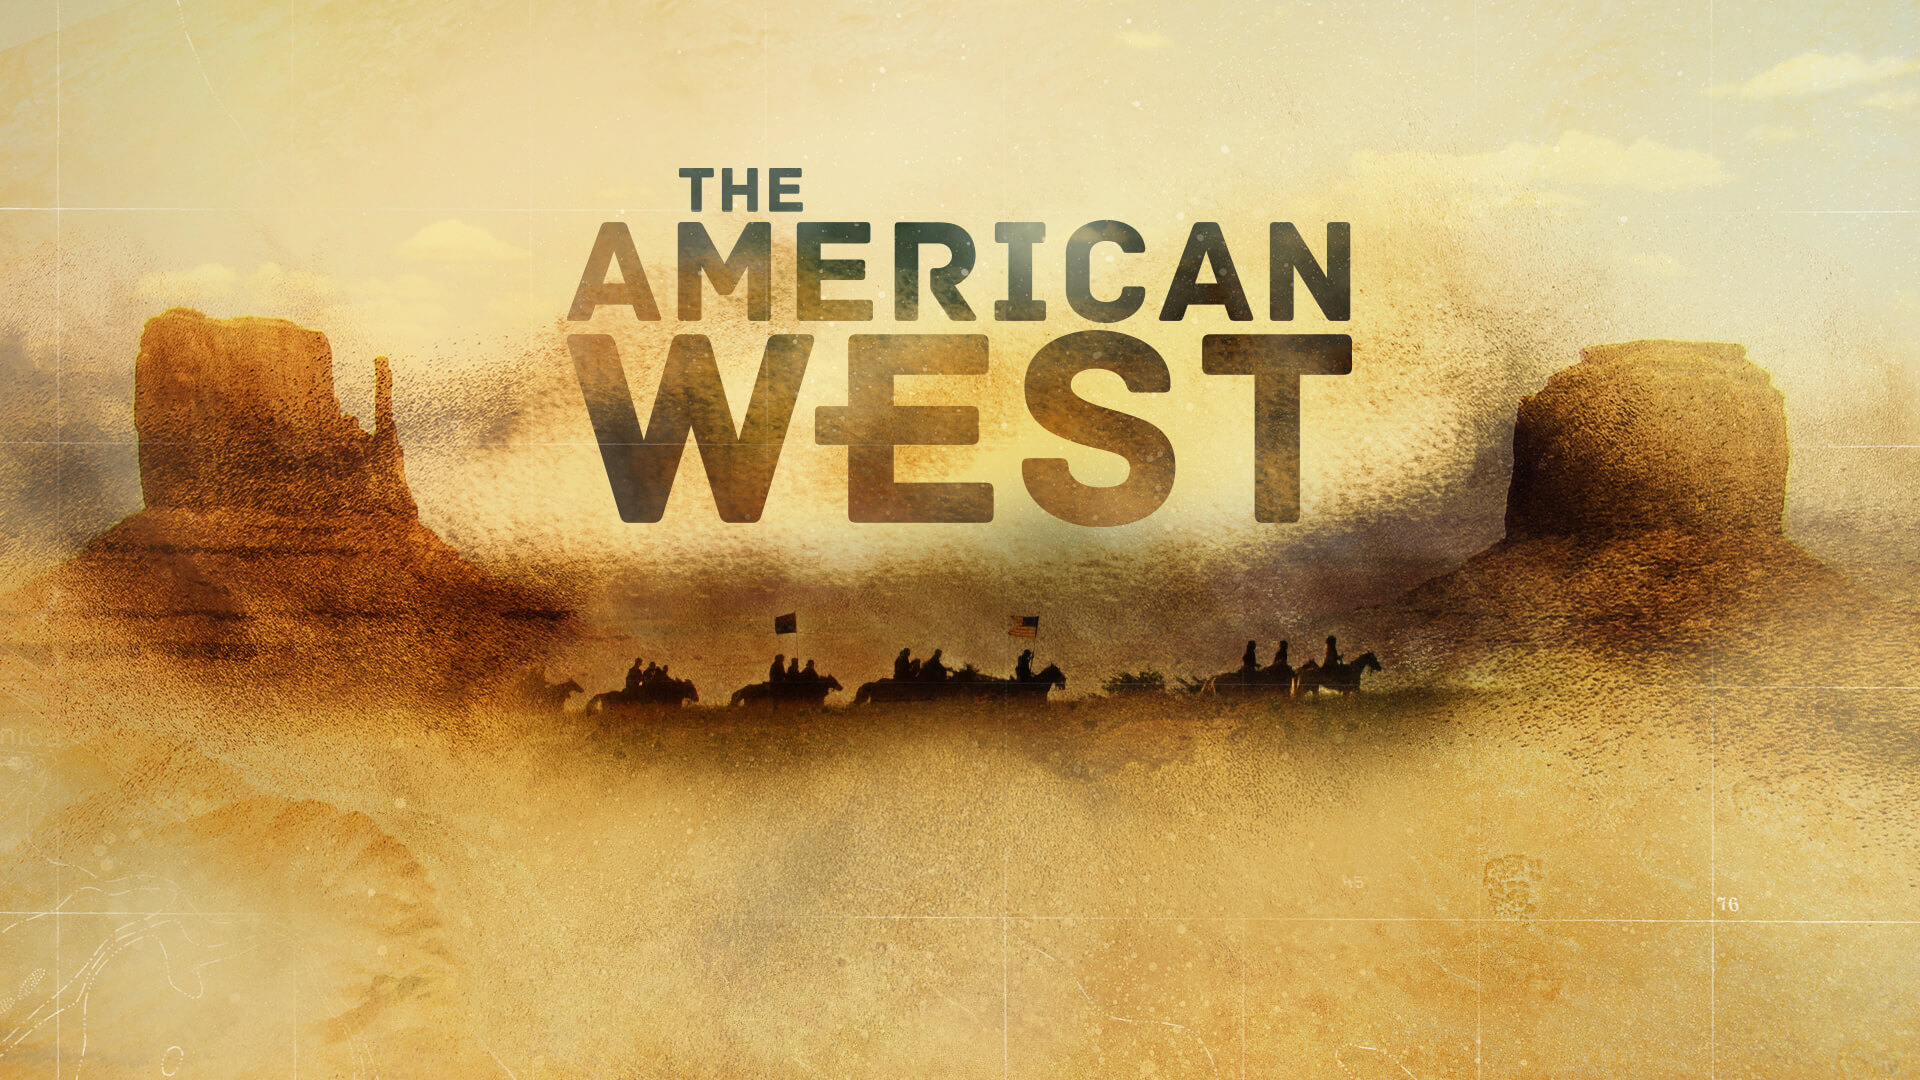 151030_AMC_THEWEST_TITLE_F_SML.jpg